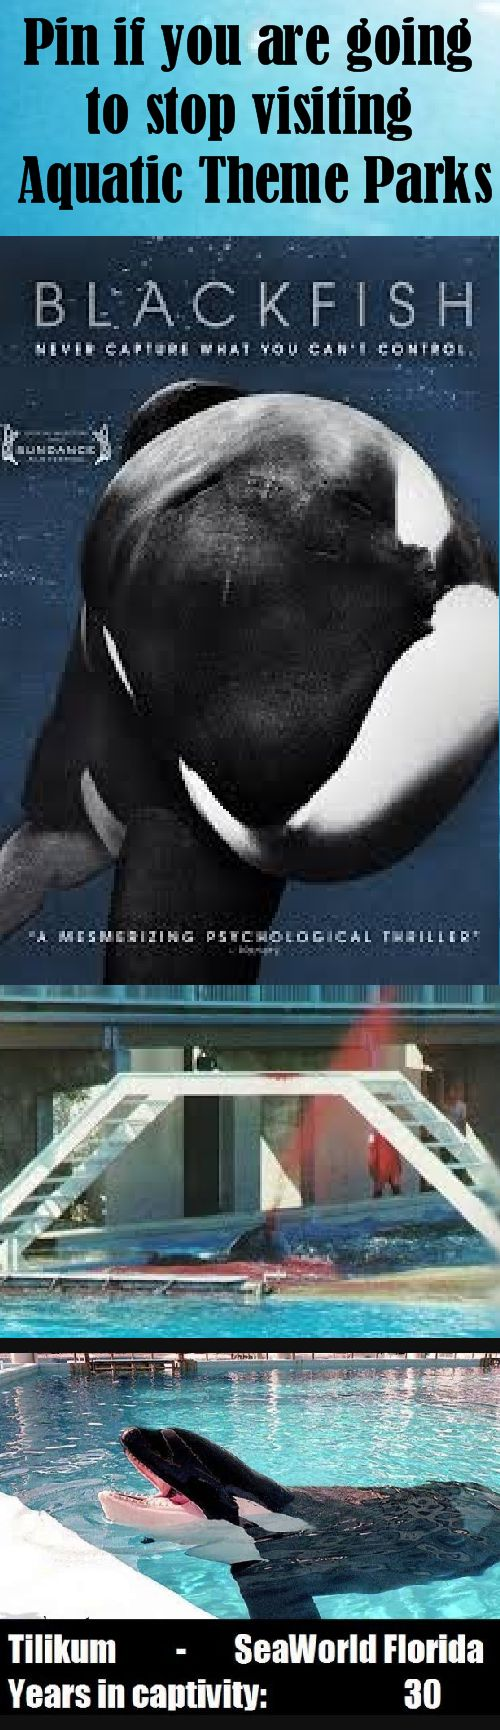 Watch Blackfish. Watch Fall from Freedom. Get educated. Prevent sea parks from profiting from animal cruelty. Do not go there. They're highest concern is to have your money, not to look after the animals. Share this pin and spread the word.